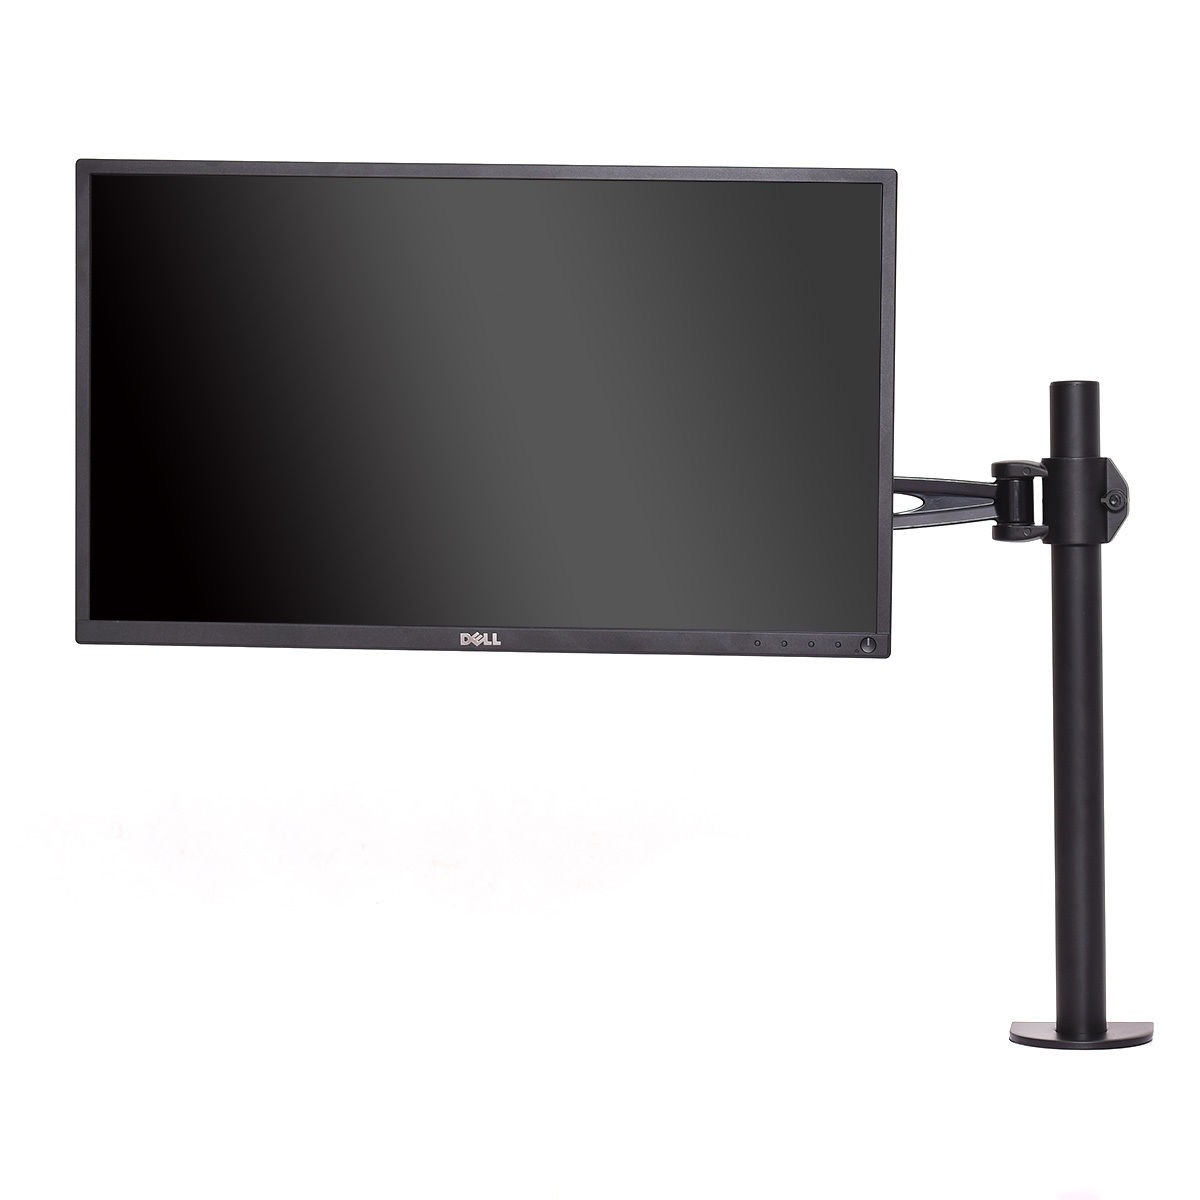 Adjustable Monitor Mount for Single LCD Flat Screen Monitor